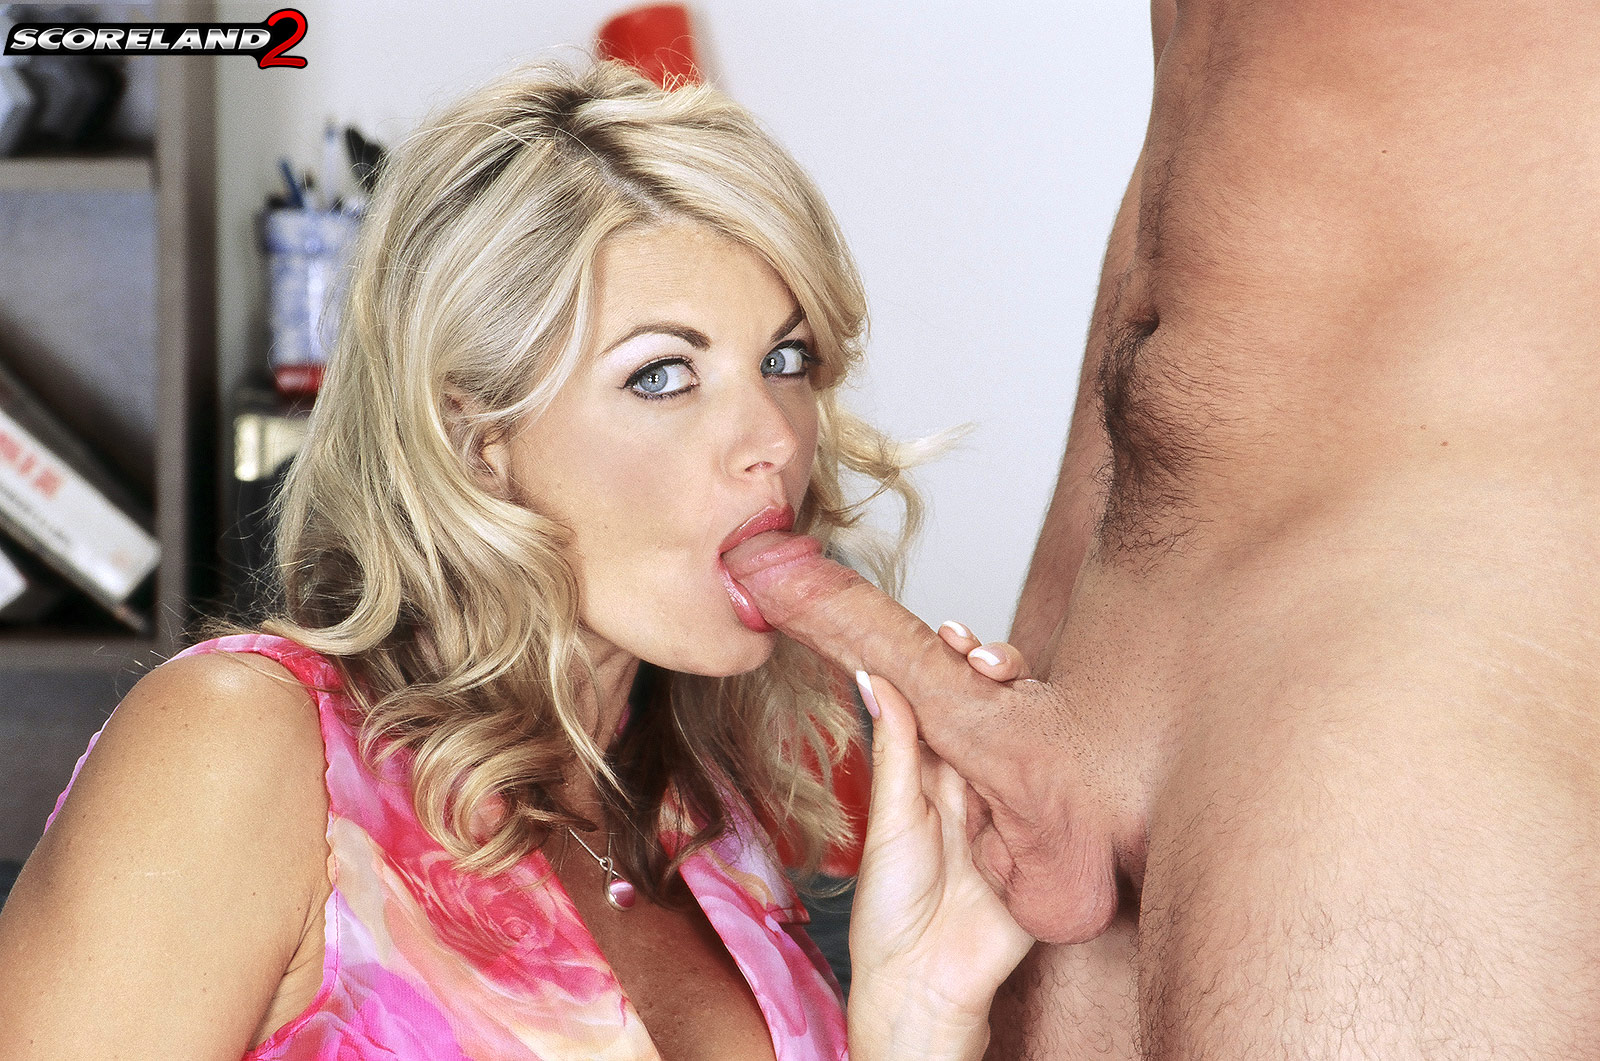 Big cocks and pussies